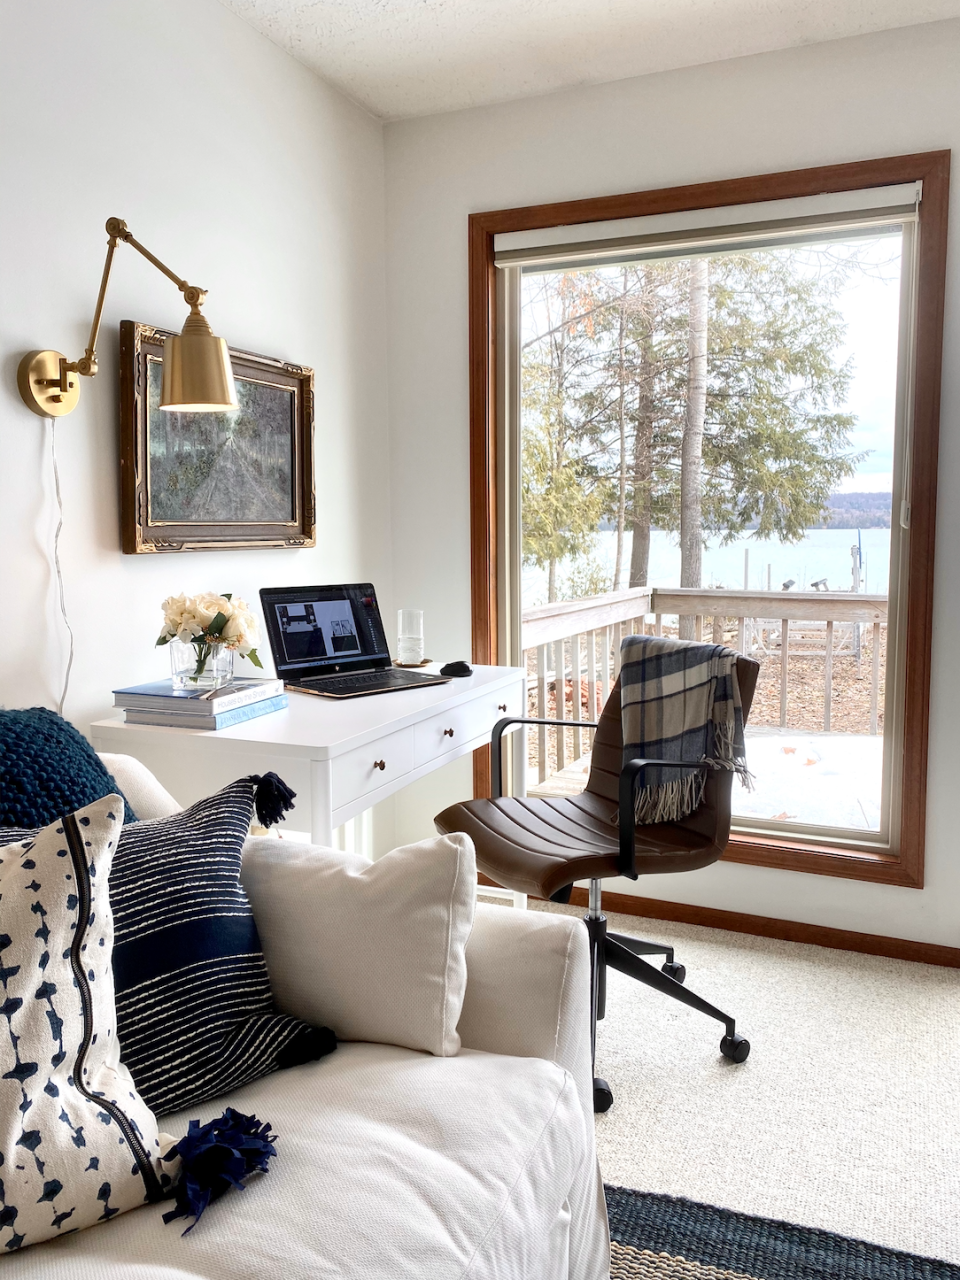 Position the desk so you can see outside—you'll get the benefit of natural light and a pretty view. (Photo: Havenly)